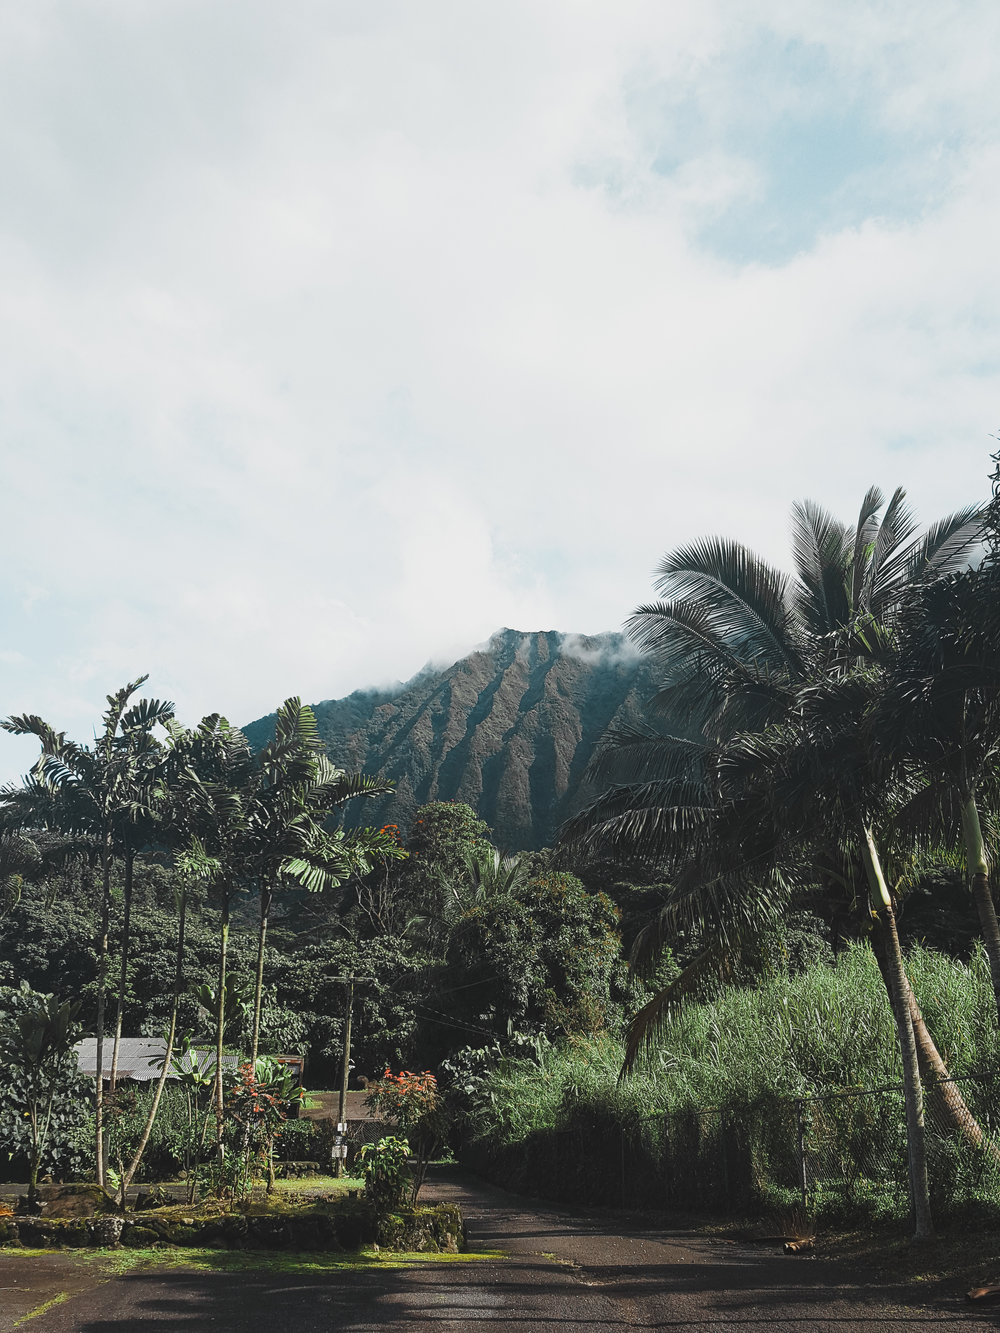 Hiking is one of the top reasons to visit Oahu